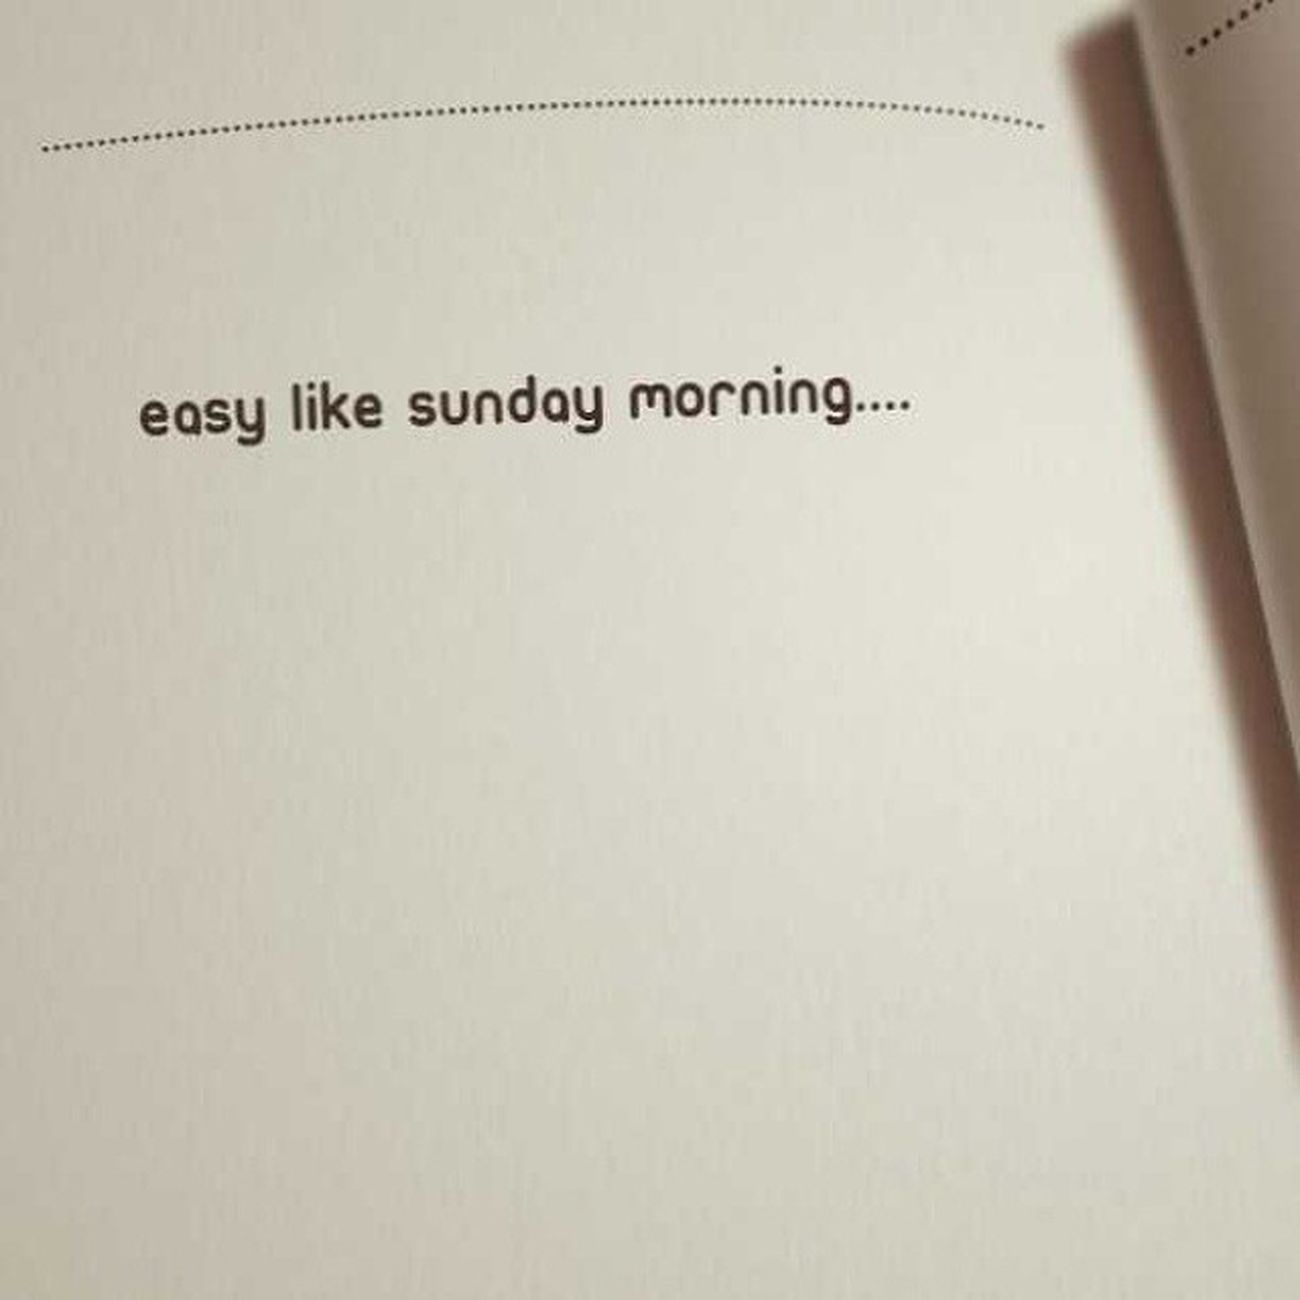 Easylikesundaymorning